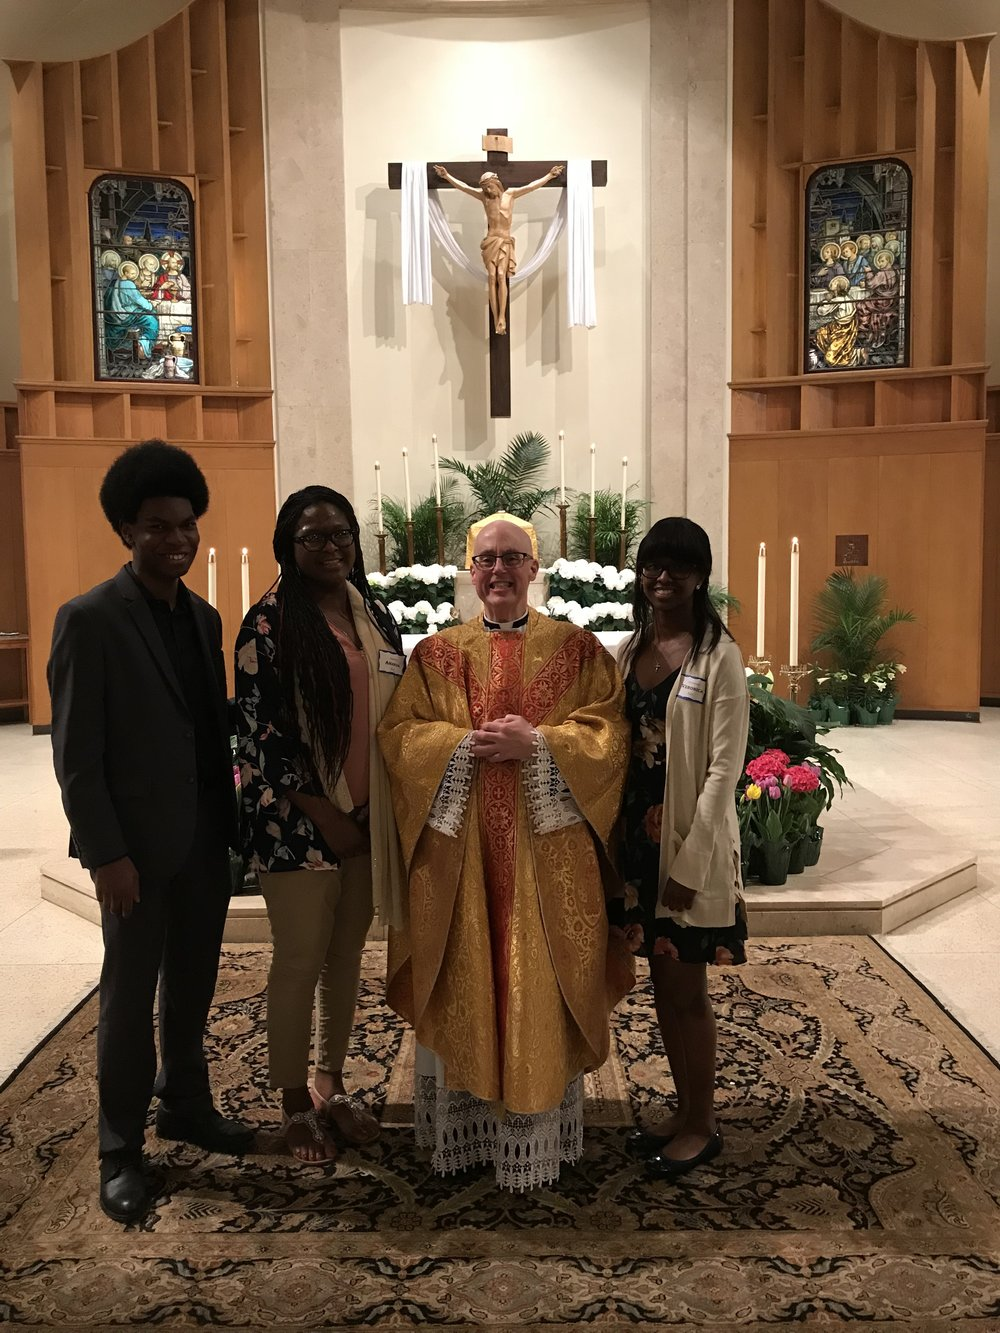 Following the Easter vigil, the newly Confirmed Joanne and Gerrianne Exil pose with their sponsor, Kelsey Exil and Fr. Healey.